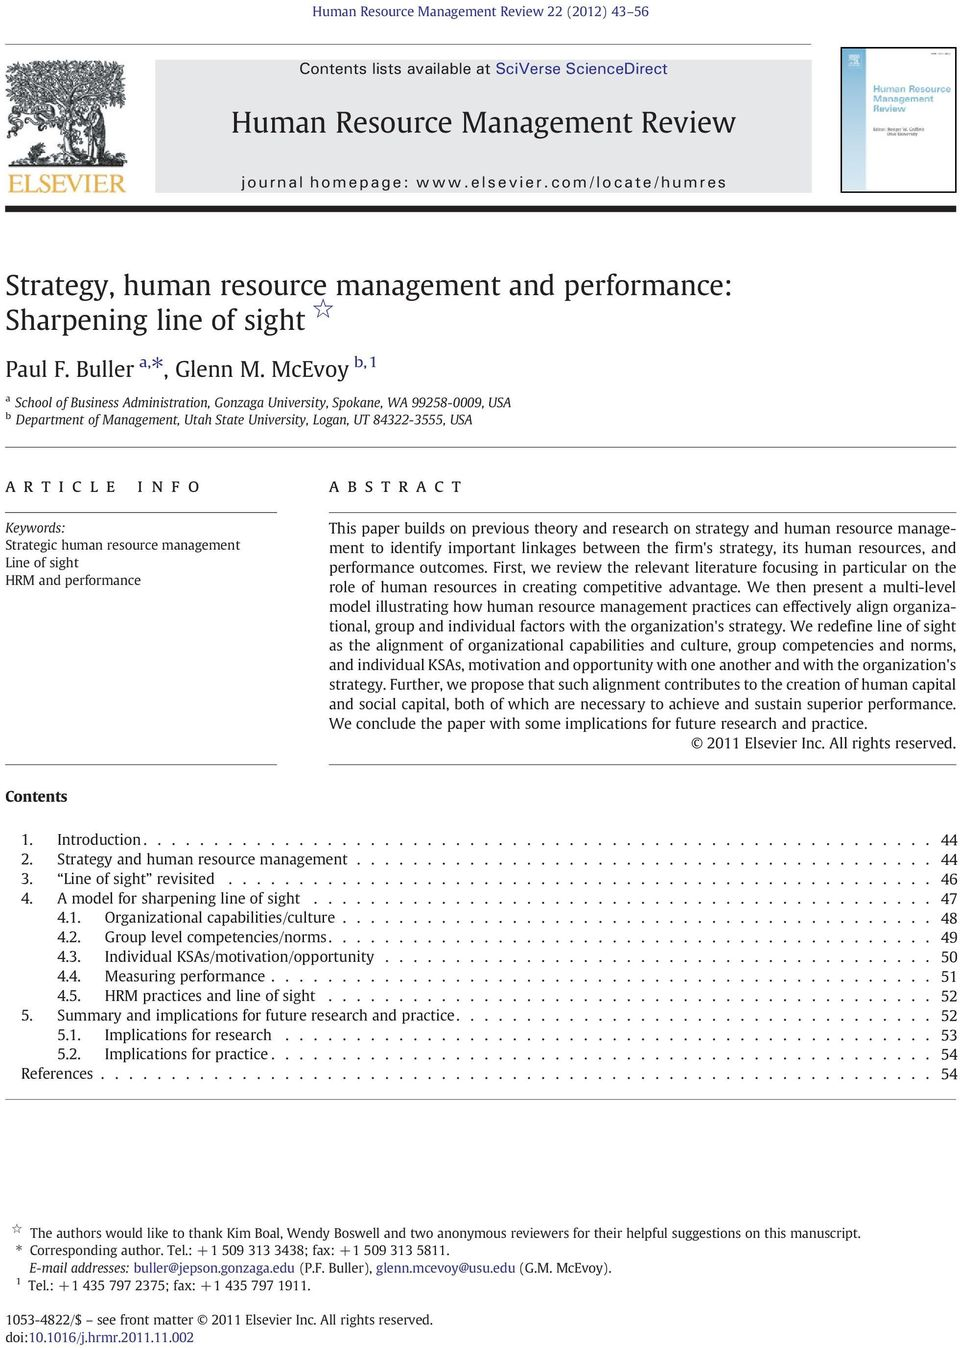 Human Resource Management Review - PDF